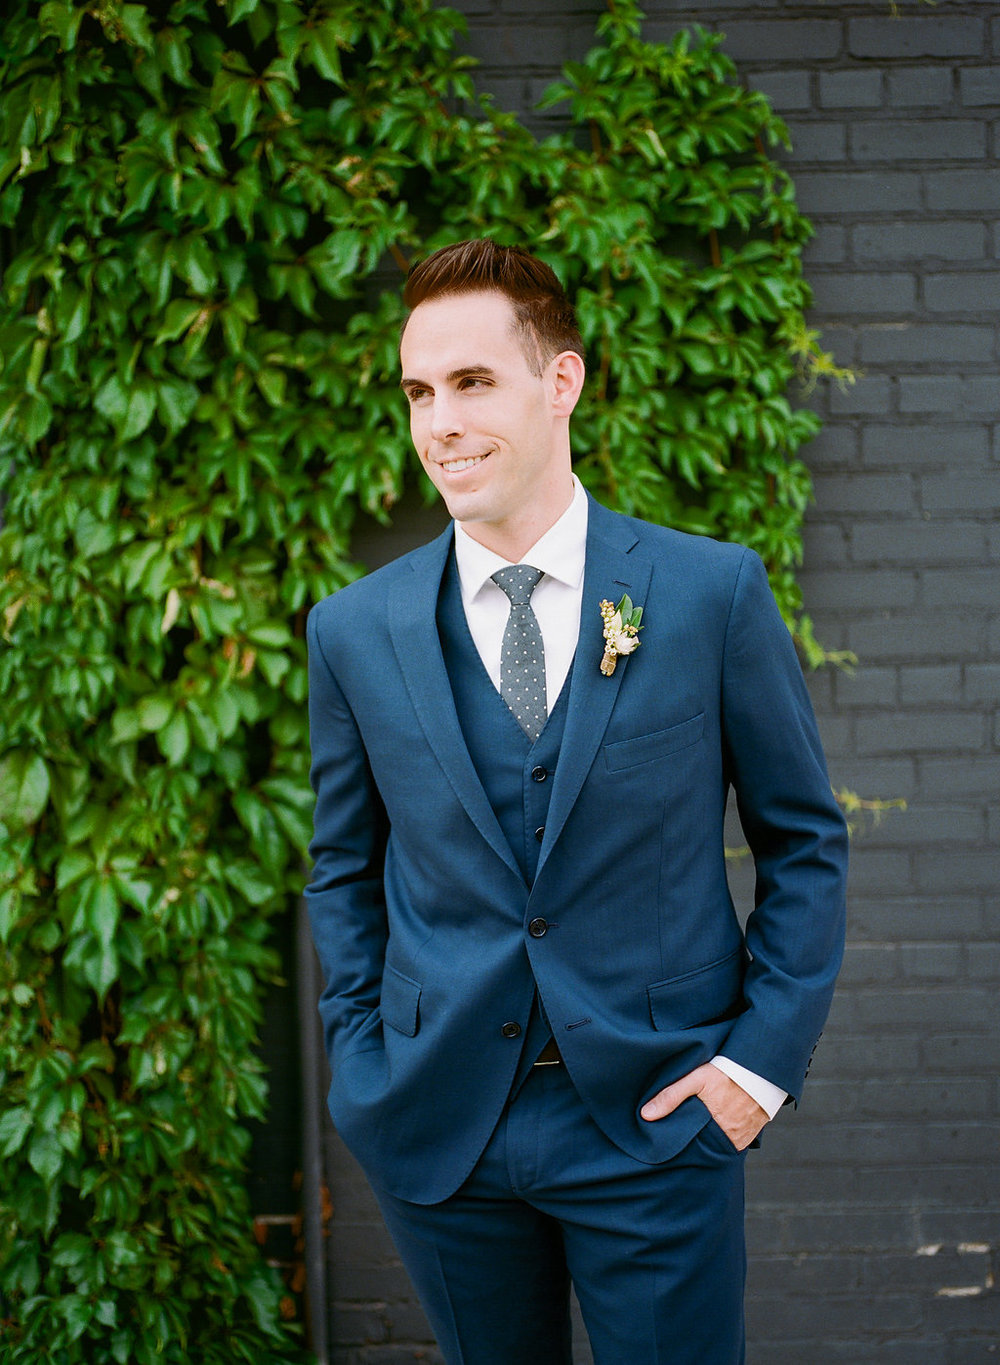 Carly Milbrath Photography | Justin and Jacob | PAIKKA Minnesota Wedding Venue | Same sex wedding iwth two grooms22.JPG